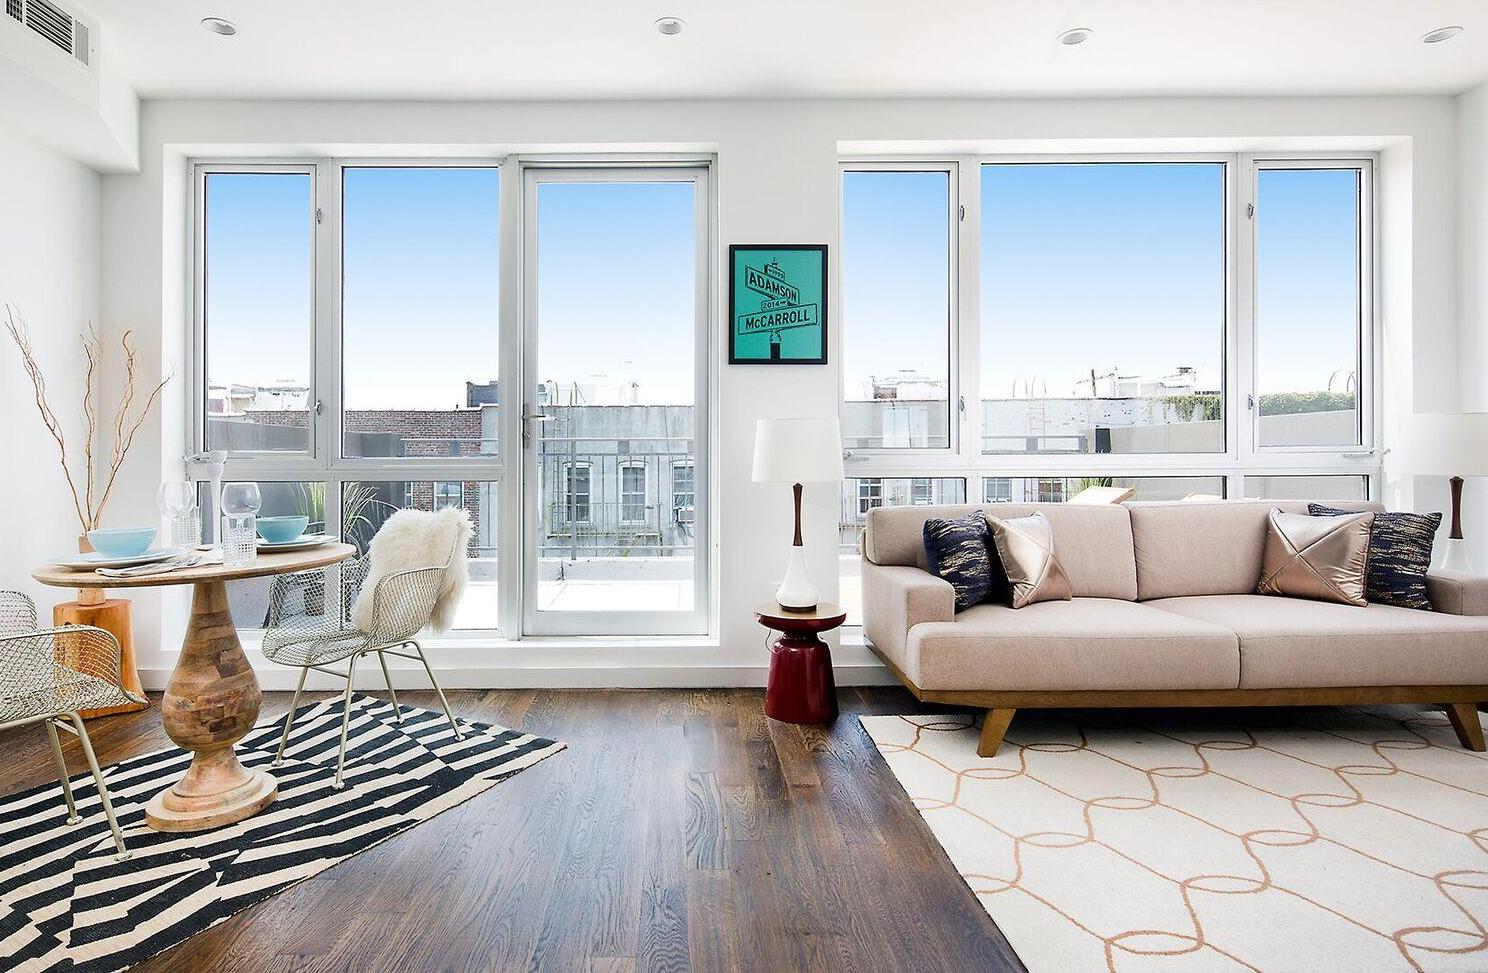 NYC apartments for $ 750k